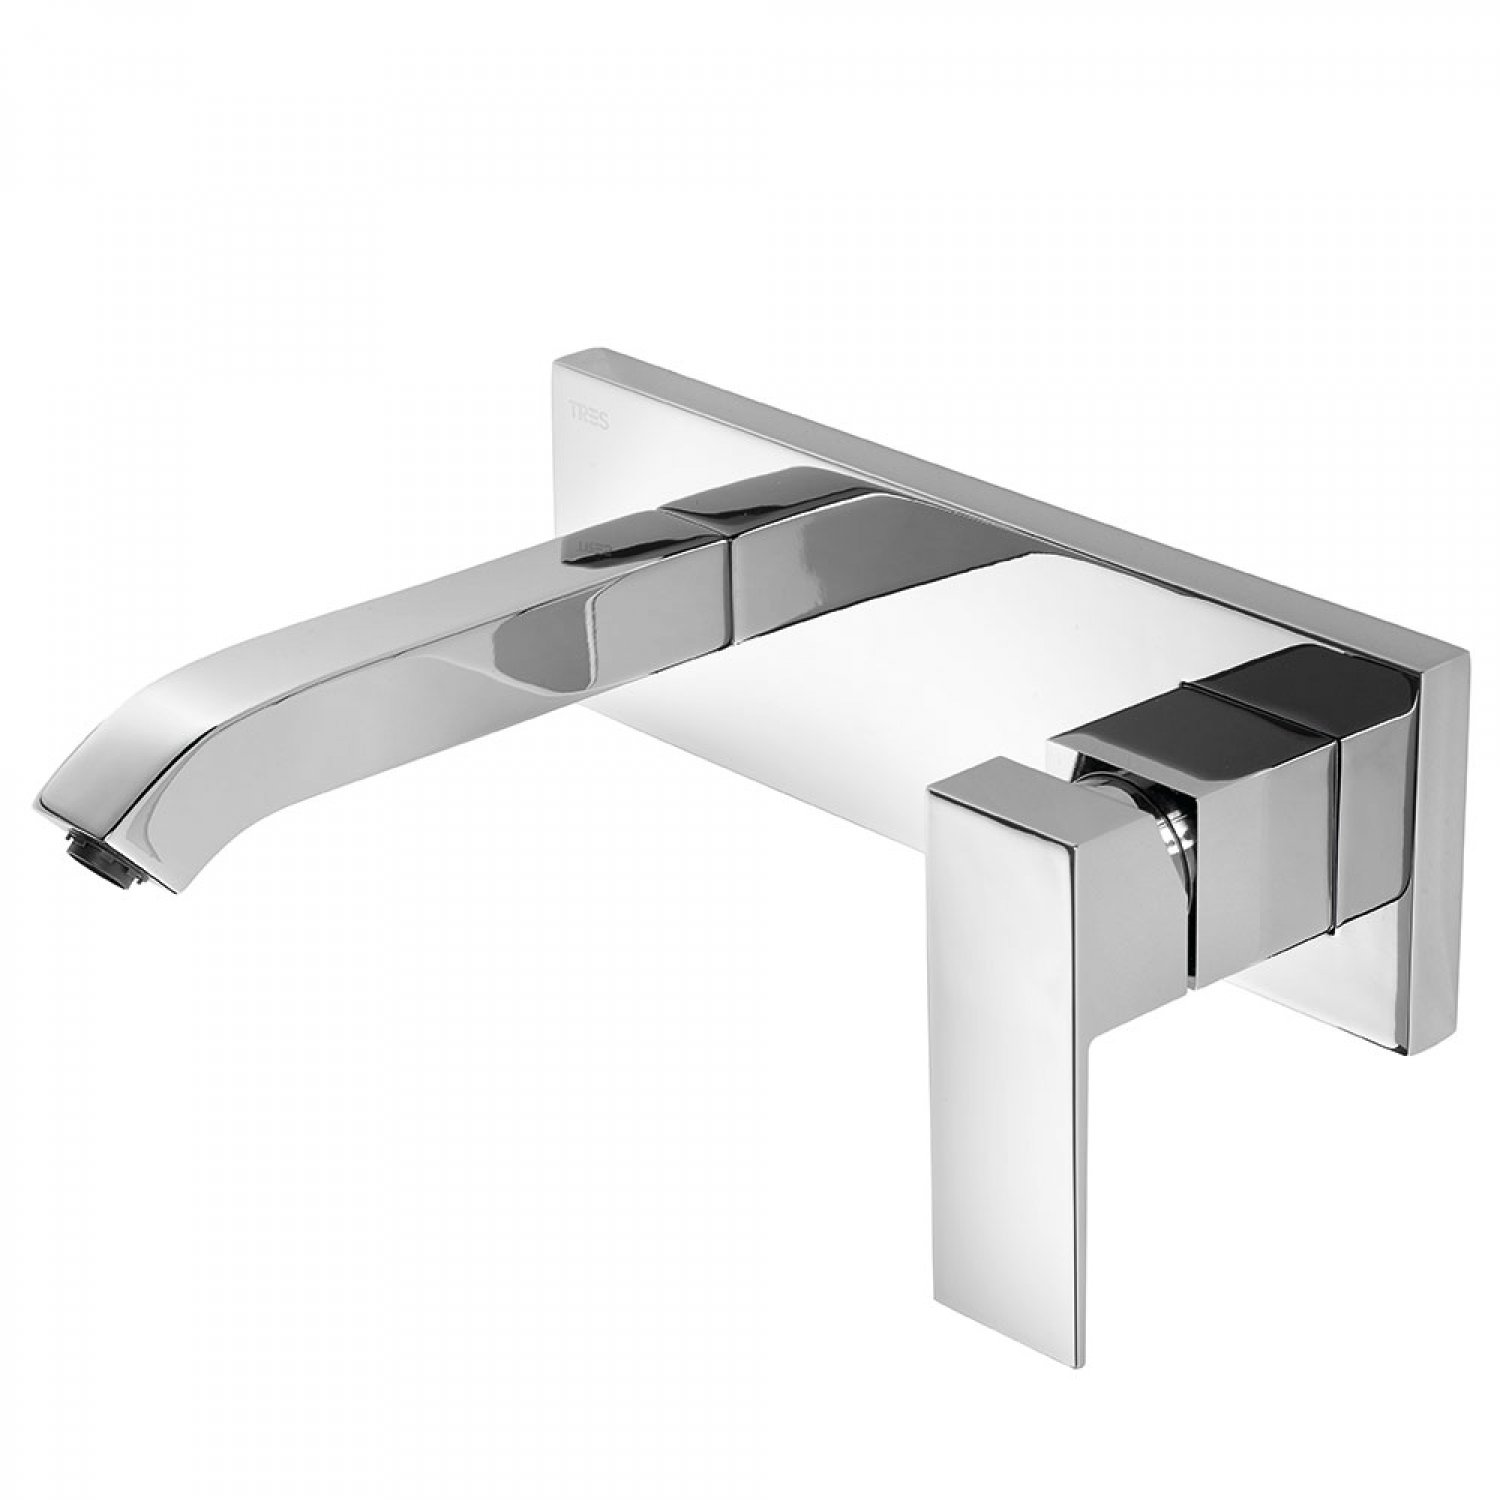 http://desidea.hu/wp-content/uploads/2019/07/Single-lever-wall-washbasin-mixer-106200.jpg